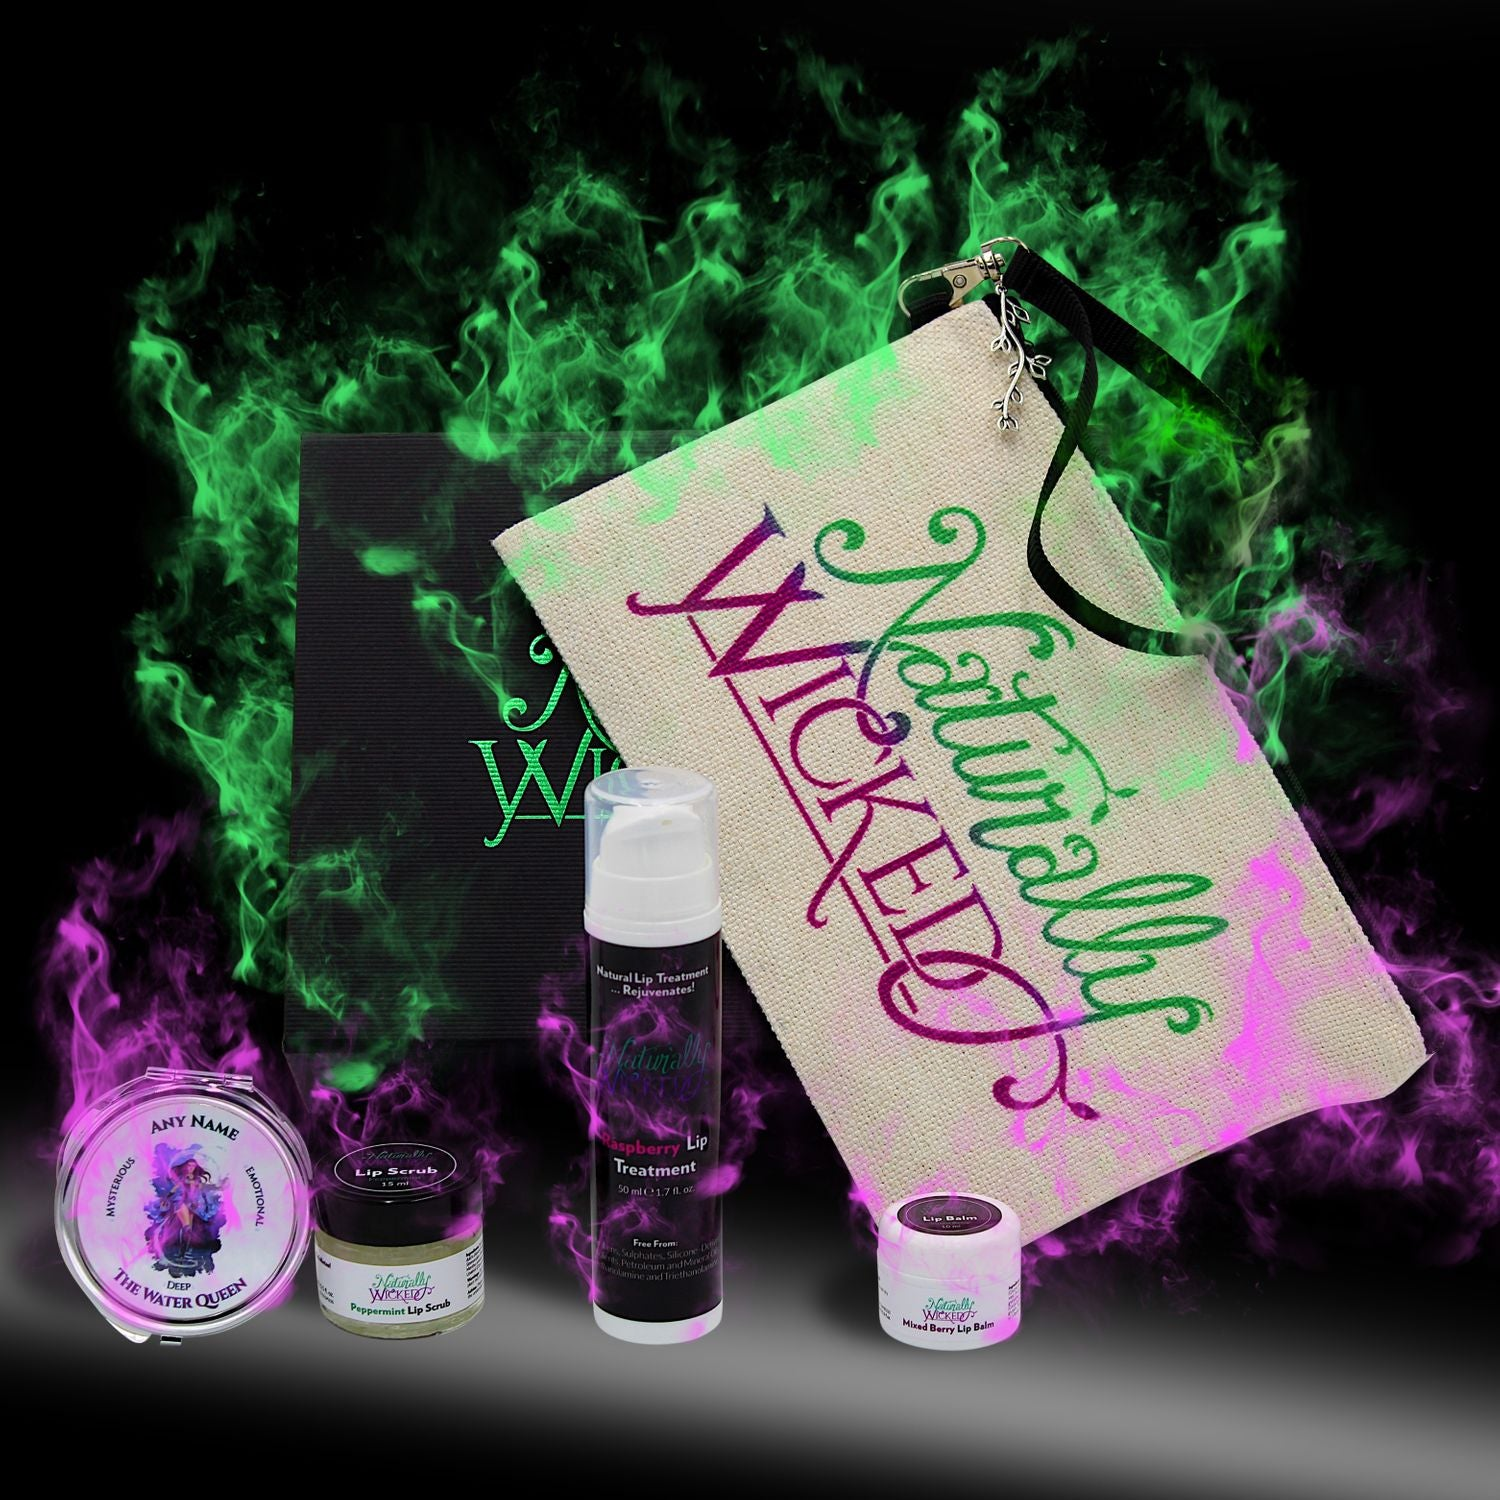 Naturally Wicked Deluxe Lip Kit Surrounded By Mysterious Green & Purple Smoke